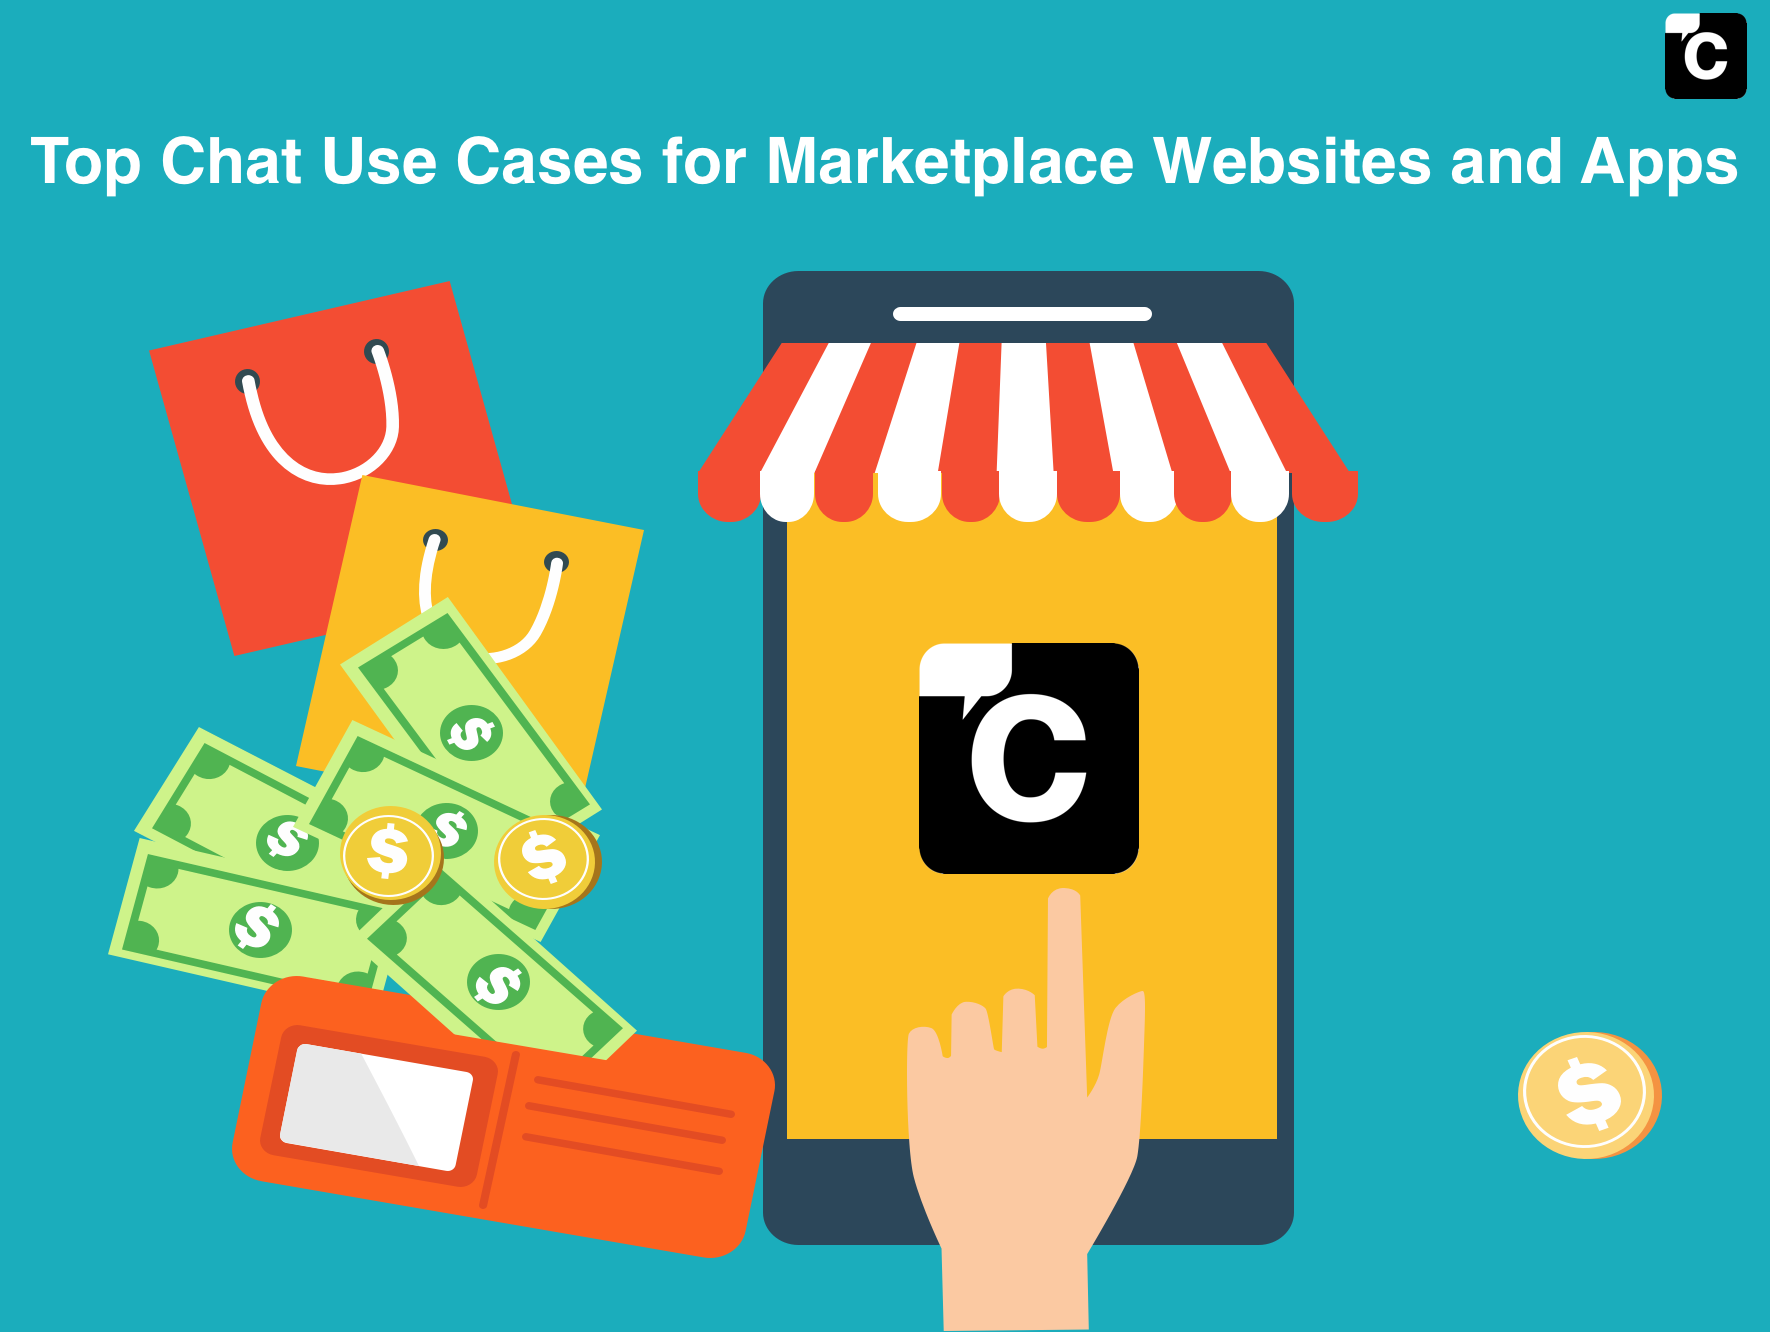 Top Chat Use Cases for Marketplace Websites and Apps